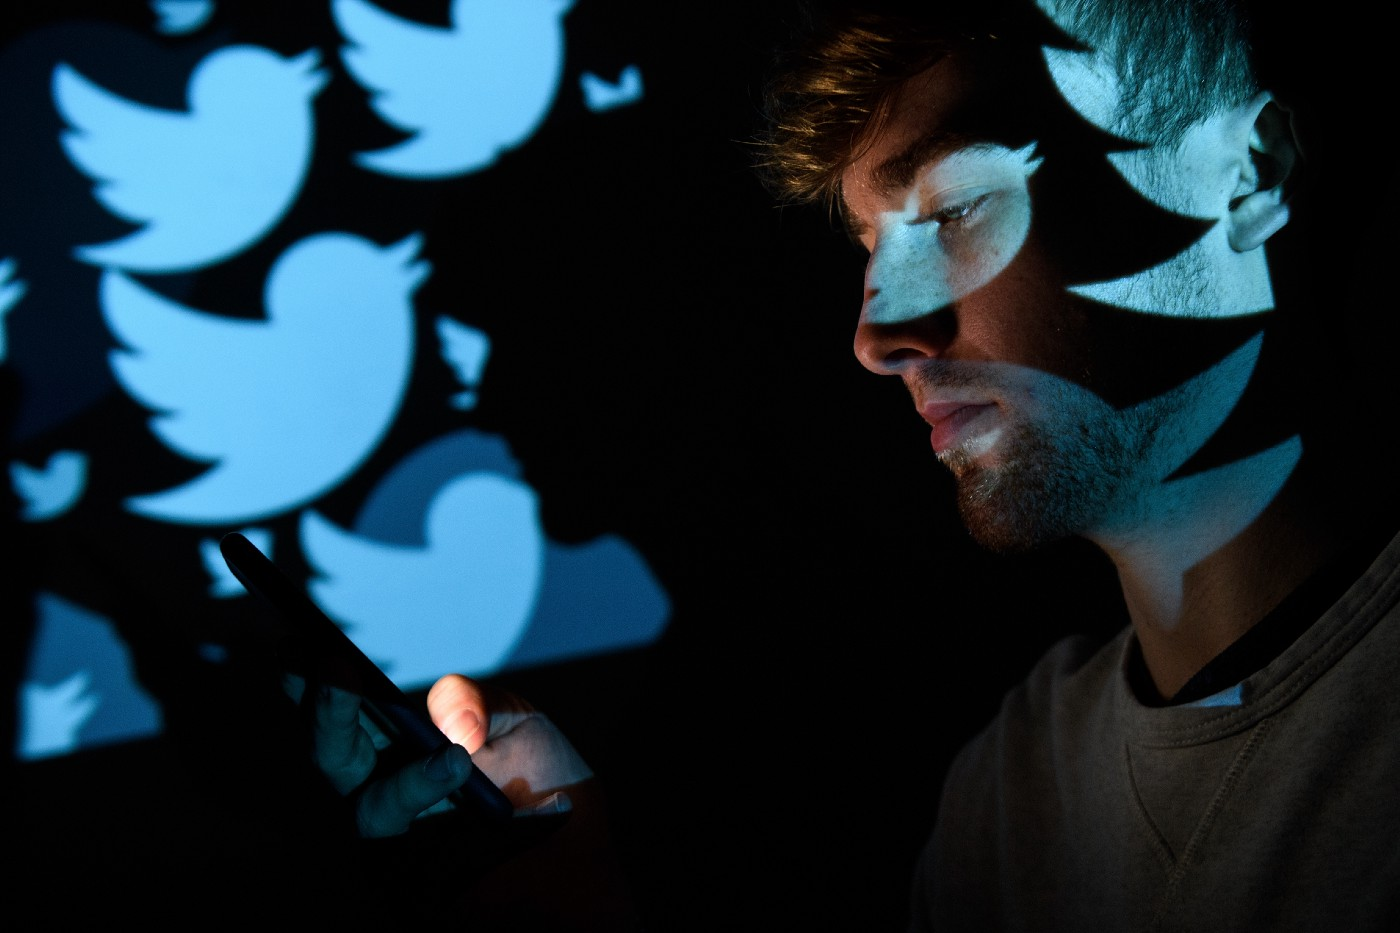 In this photo illustration, the logo for the Twitter social media network is projected onto a man's face.